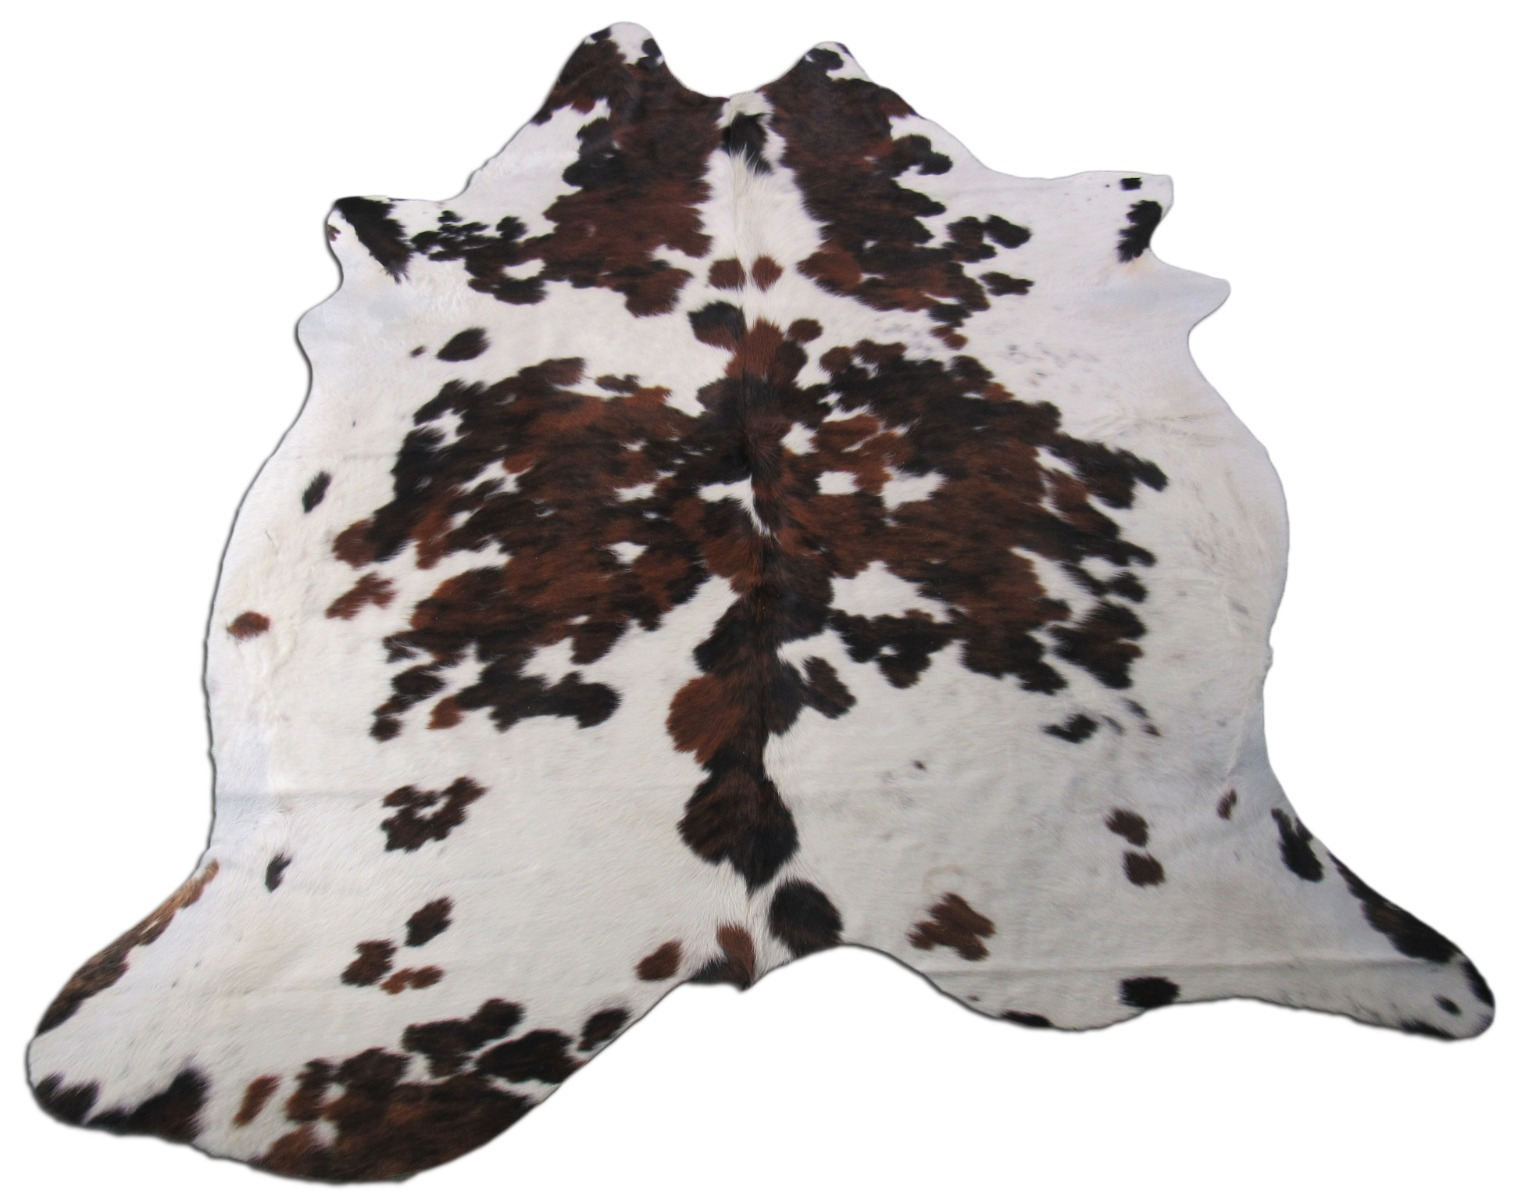 A-1418 Tricolor Speckled Cowhide Rug Size: 7' X 6 1/4'